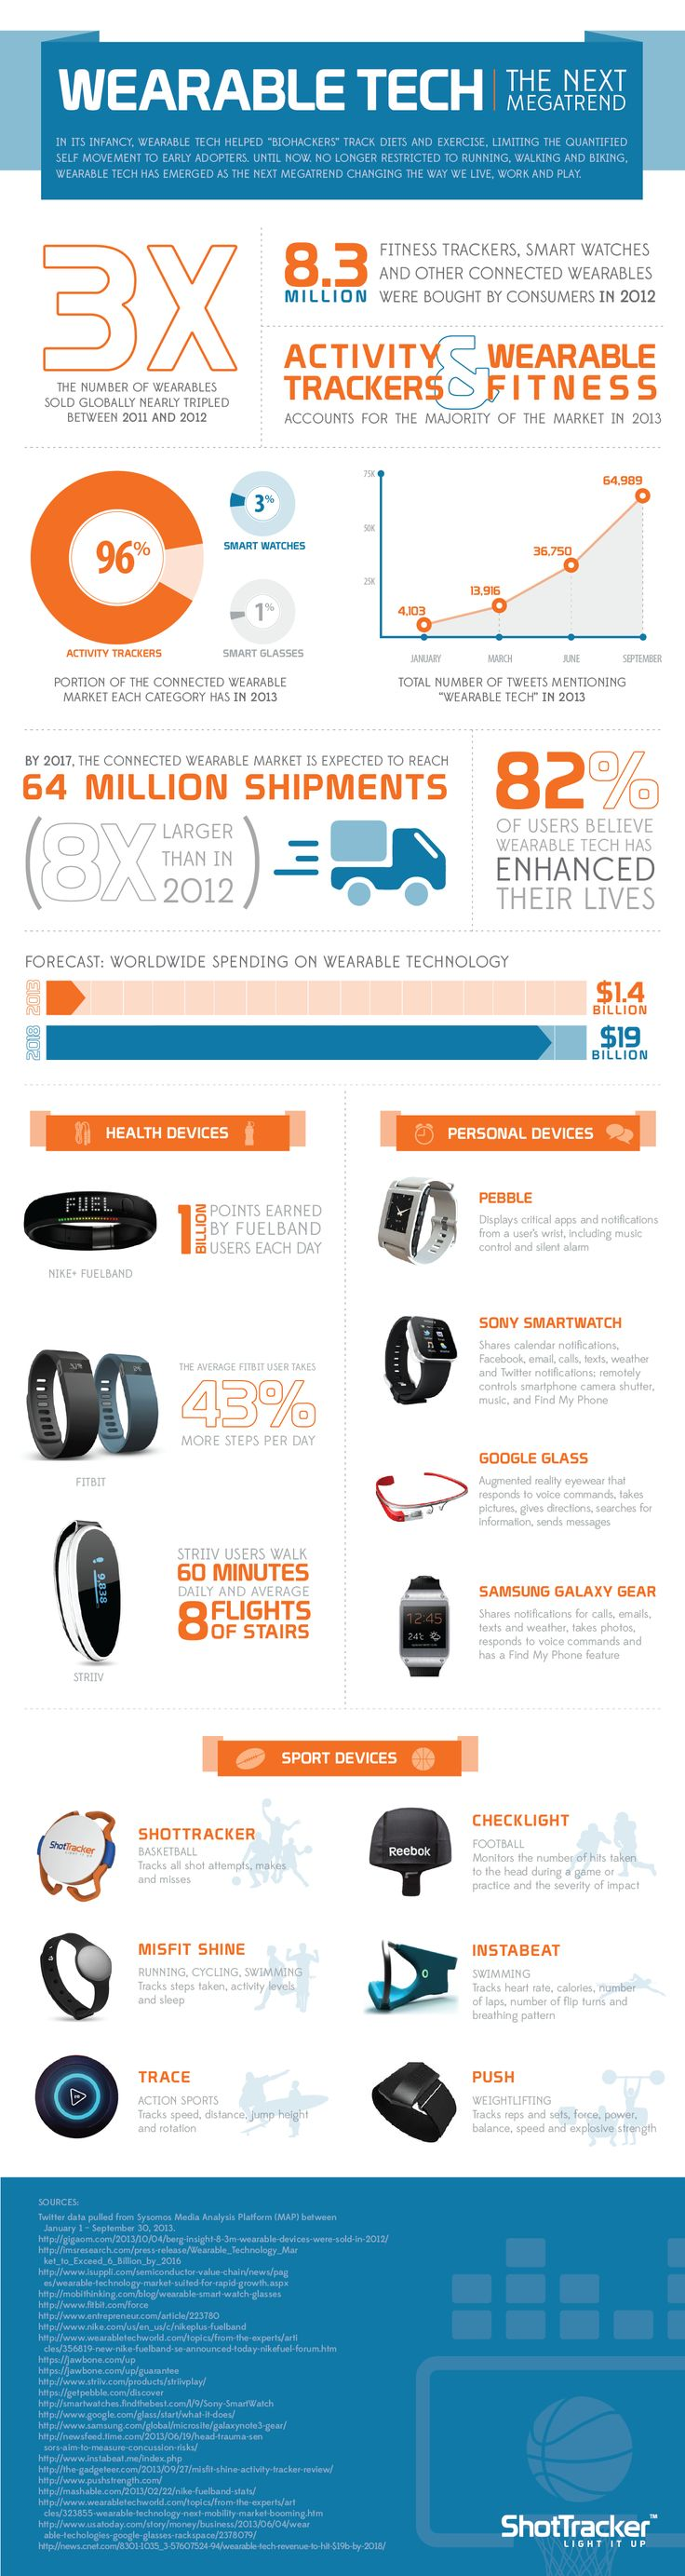 Infographic: The Future of Wearable Technology in Healthcare #wearabletech #infographic